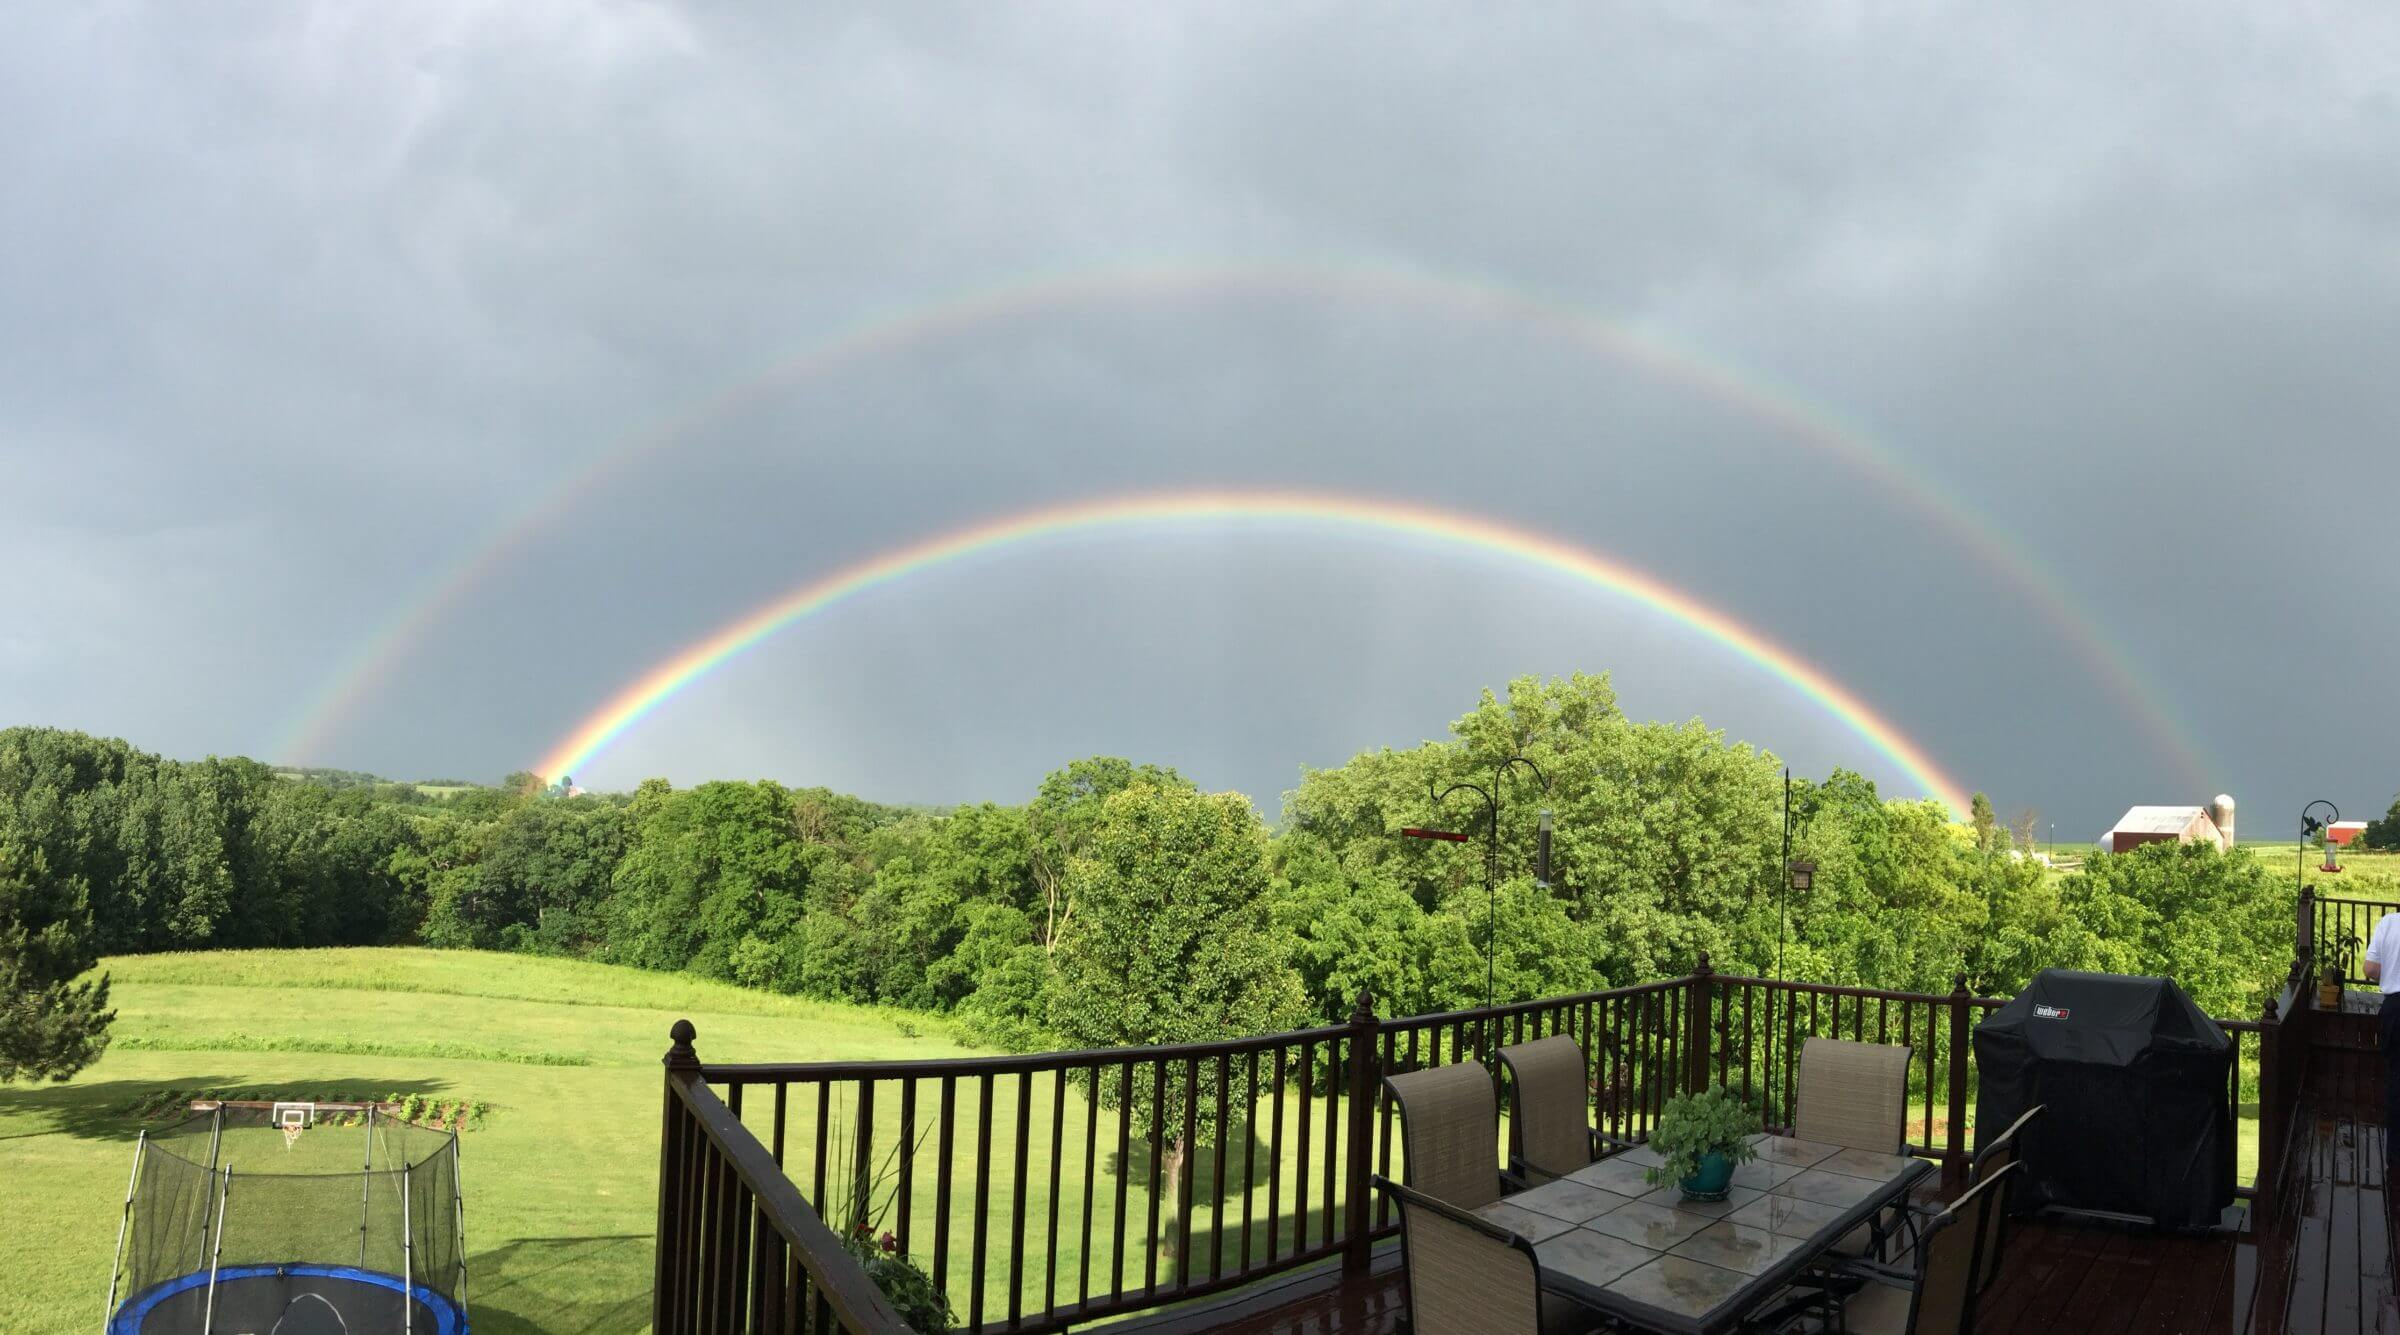 A view of a beautiful double rainbow in our backyard